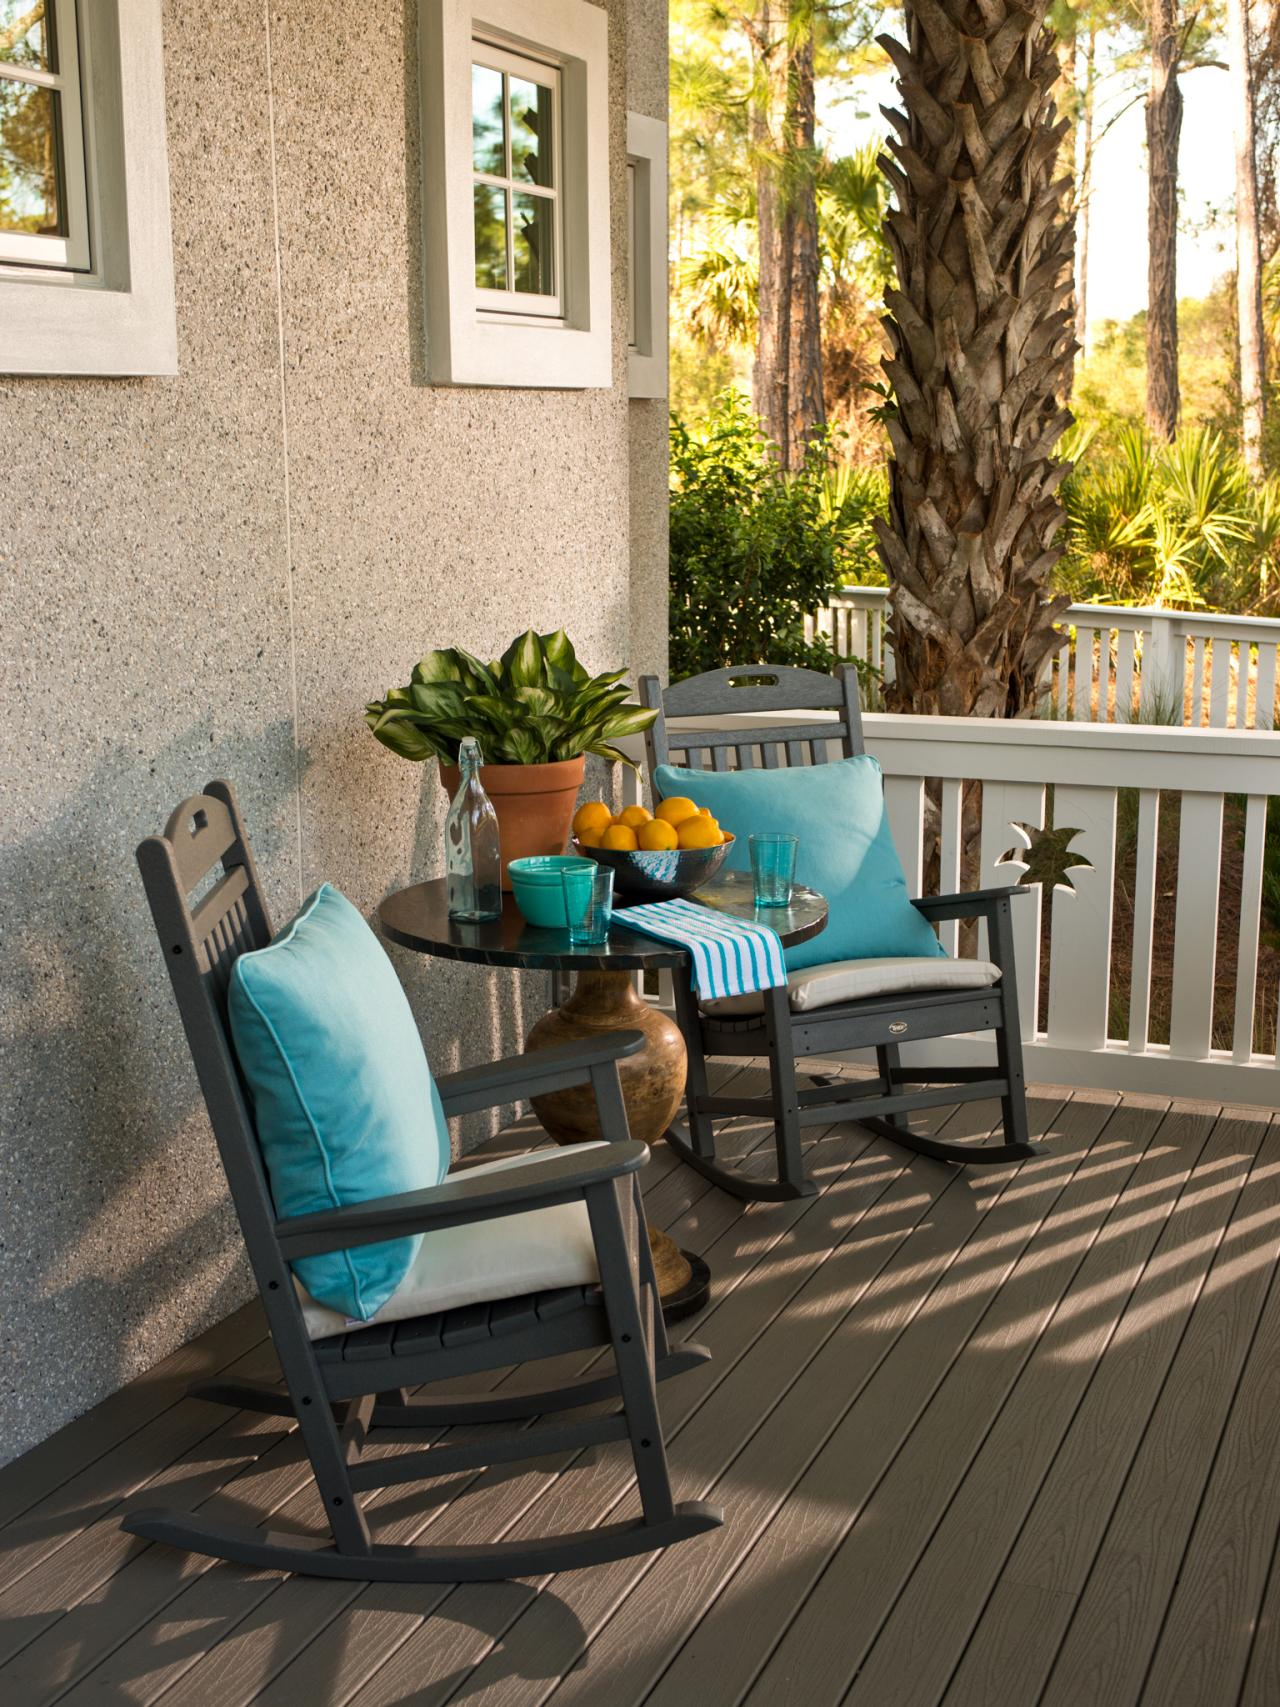 Best Front Porch Rocking ChairsBest Front Porch Rocking Chairs